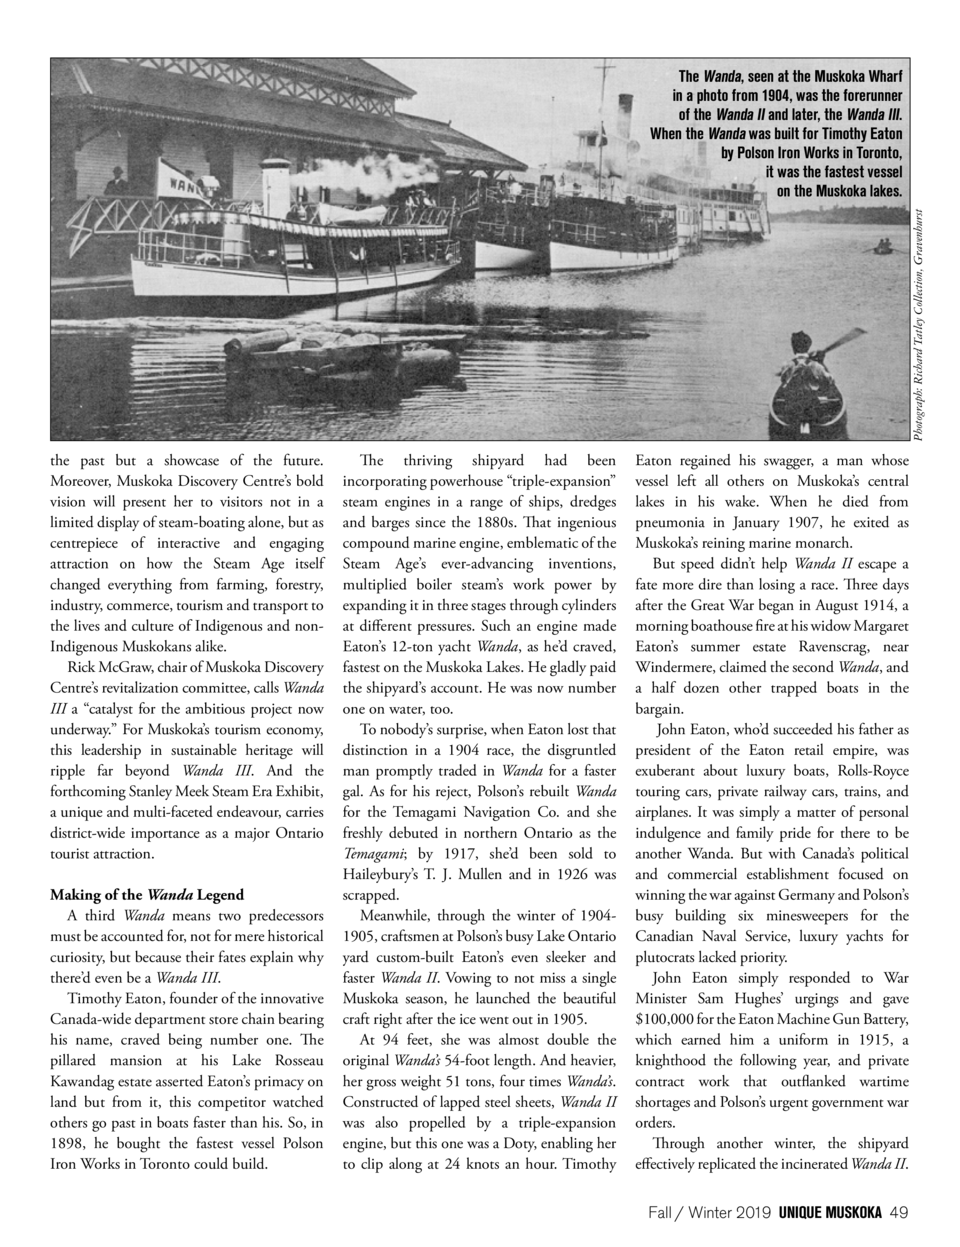 Photograph  Richard Tatley Collection, Gravenhurst  The Wanda, seen at the Muskoka Wharf in a photo from 1904, was the for...